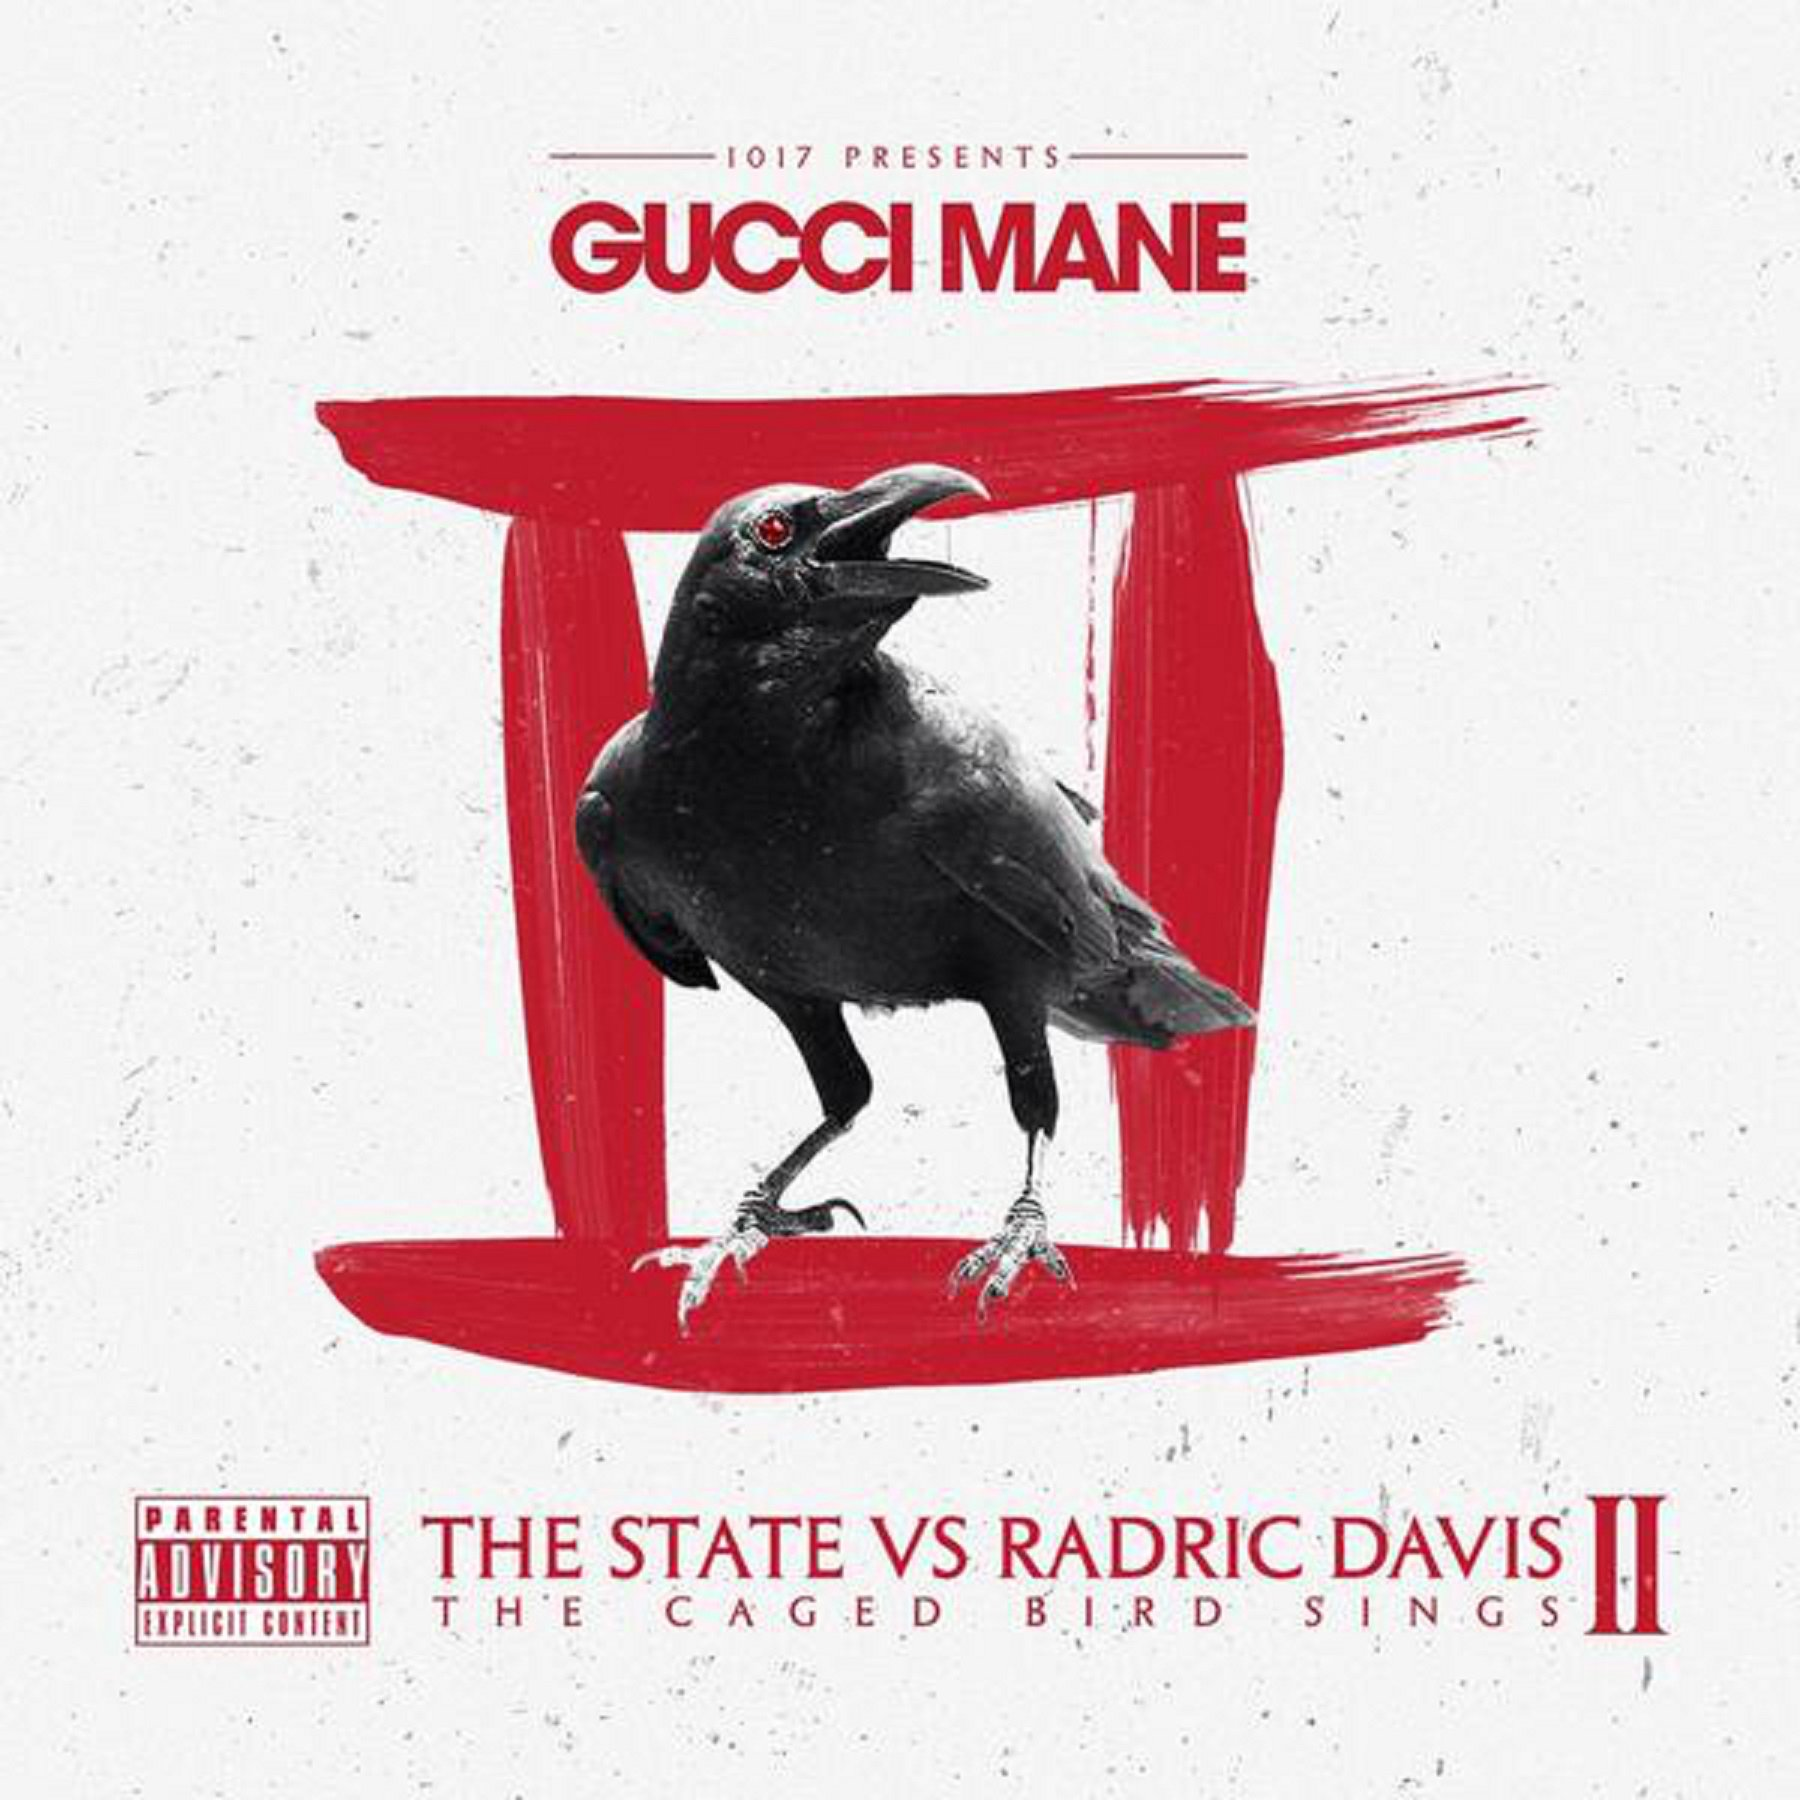 Gucci mane trap house 3 by rbc records | free listening on.